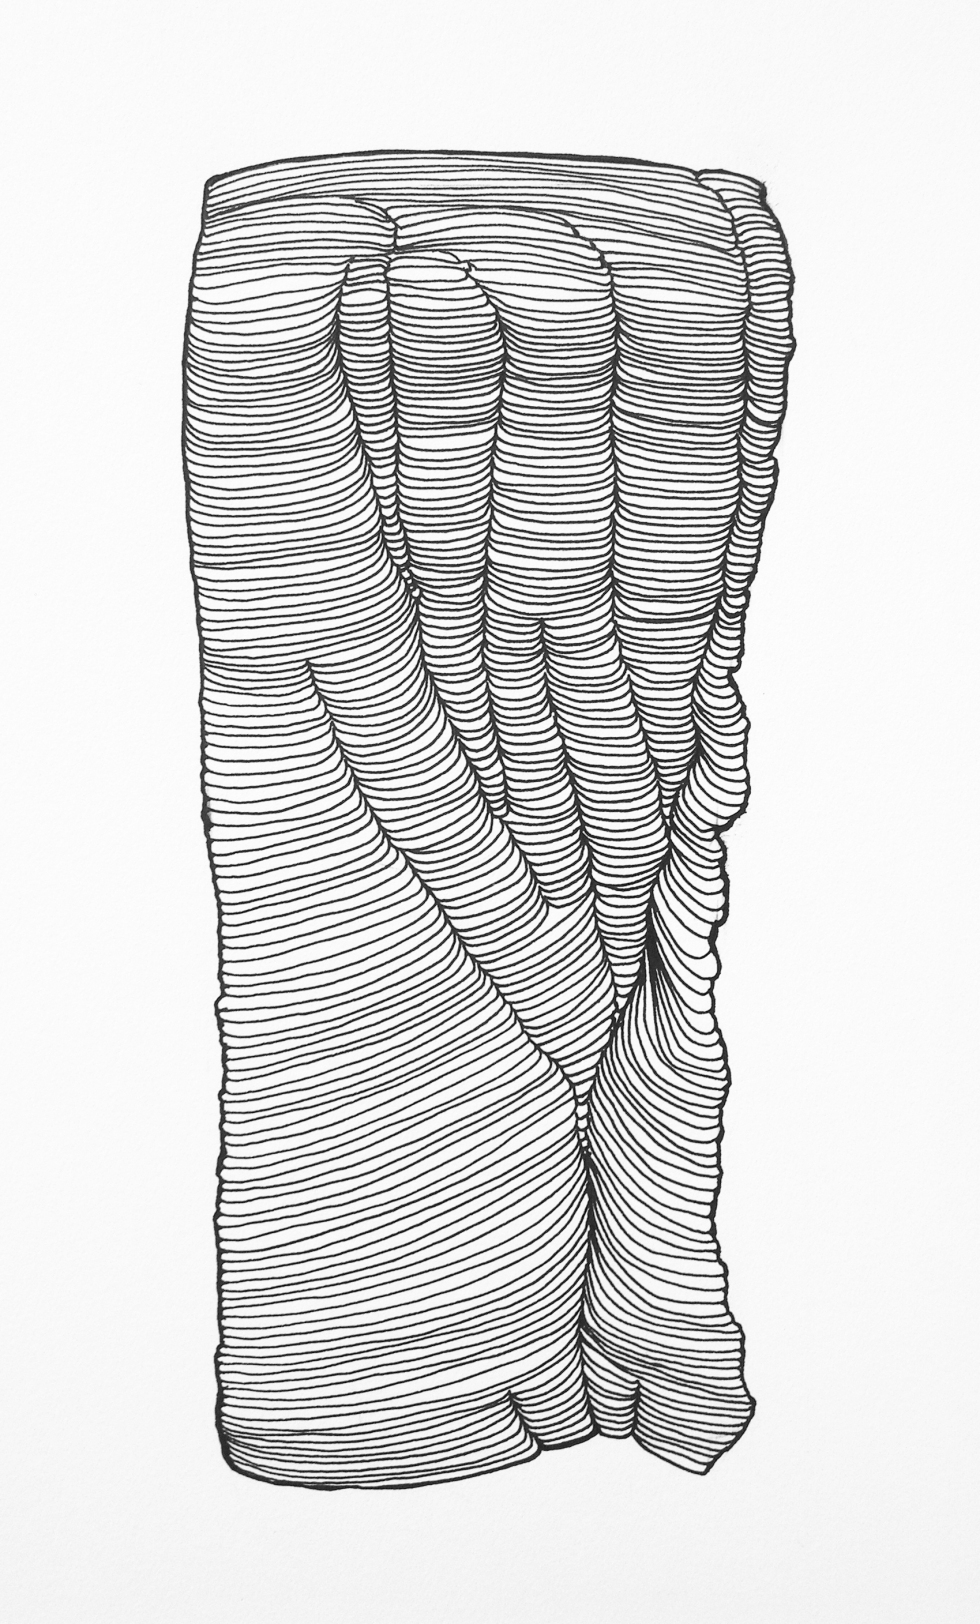 Knot, pen and ink drawing part of Hockaday Museum of Art exhibit.